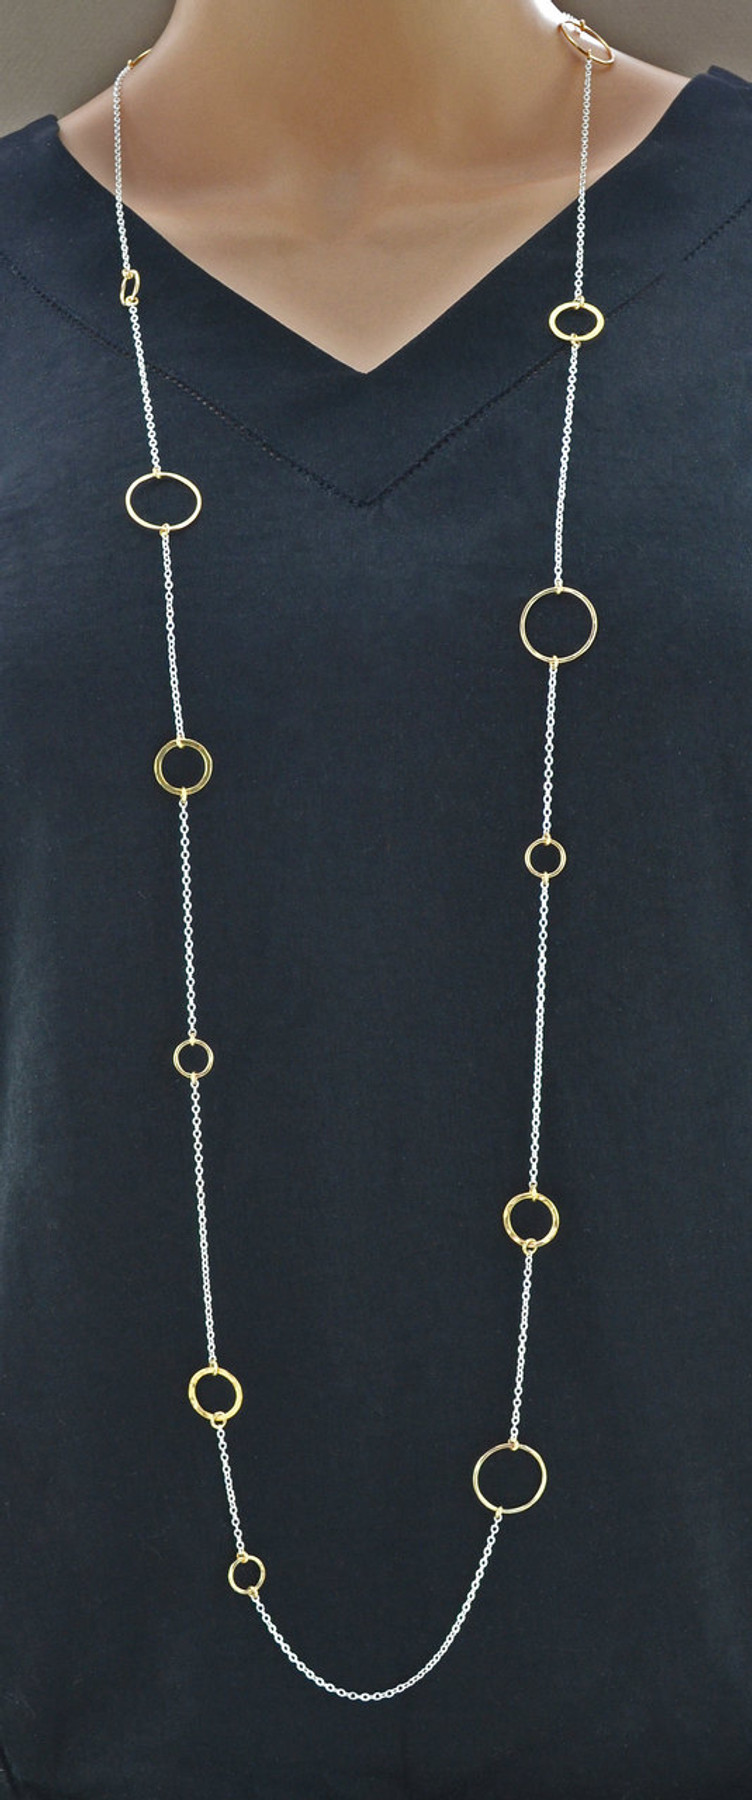 Shimmering Multilayer Sterling Silver Necklace Chain: view 2